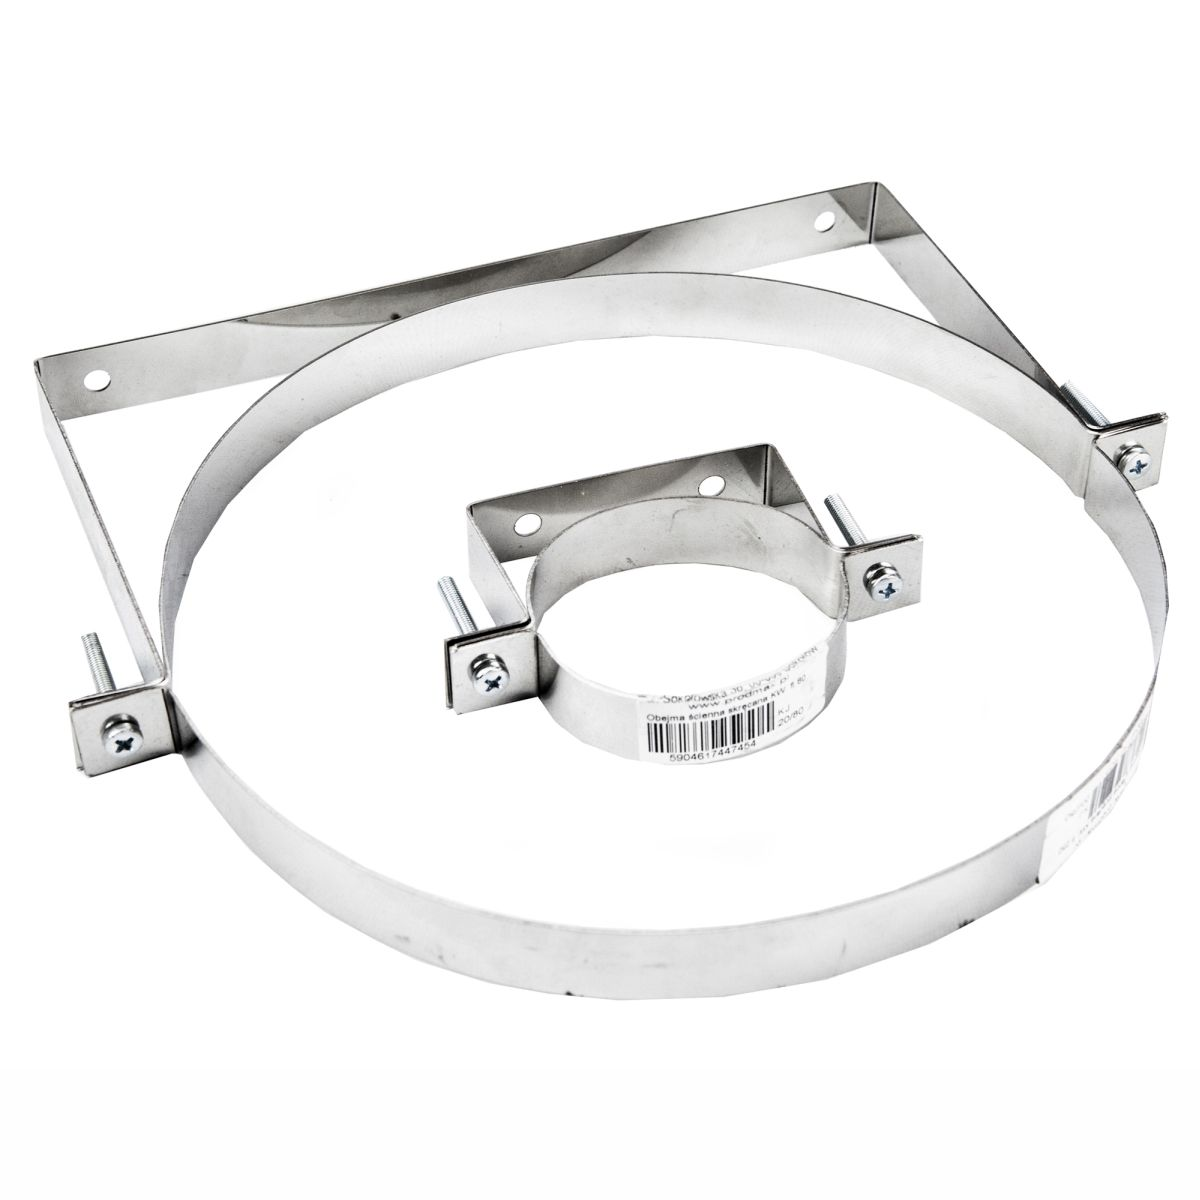 Stainless steel chimney flue wall support clamp pipes